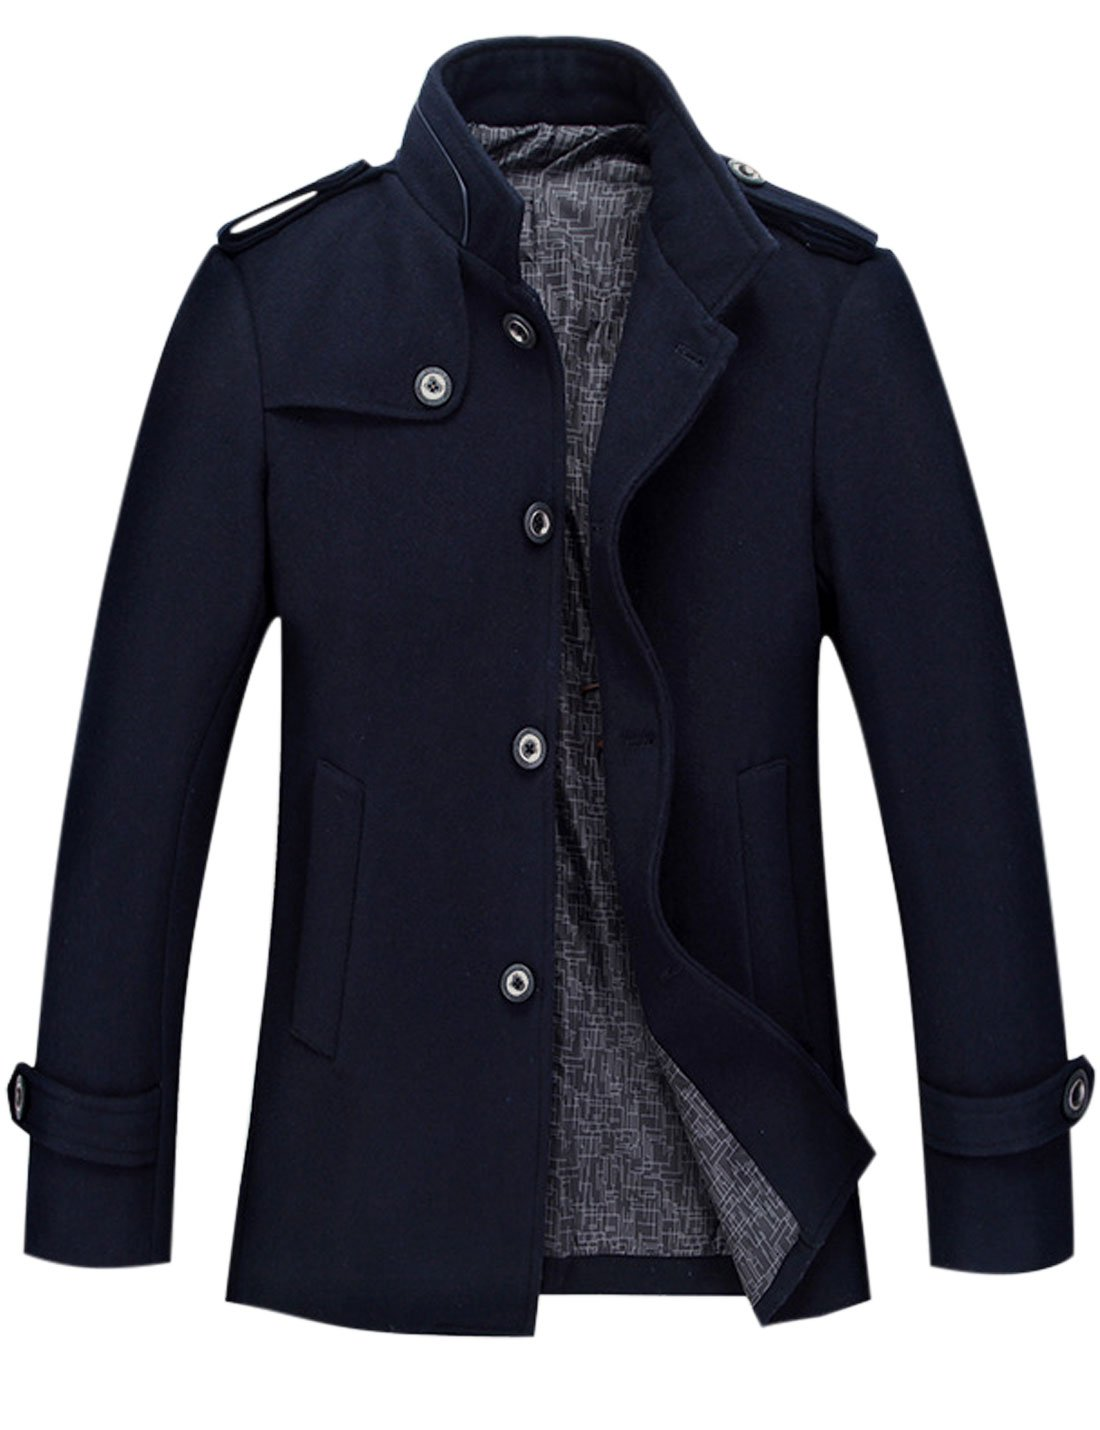 Tanming Men's Stylish Single Breasted Wool Blend Pea Coat Mutiple Colors (Medium, Blue)